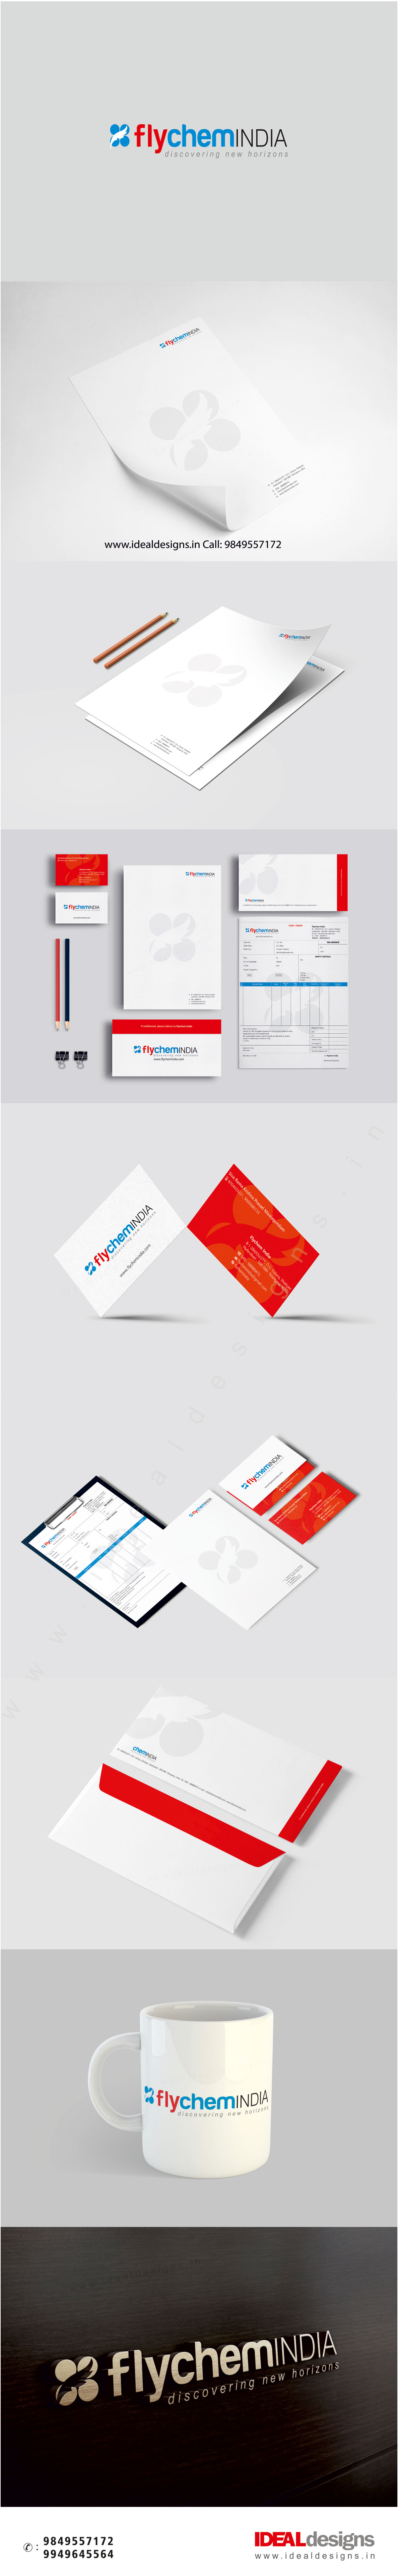 creative-Stationery-Design-Services-in-Hyderabad-professional-Stationery-Design-Services-in-Hyderabad.jpg